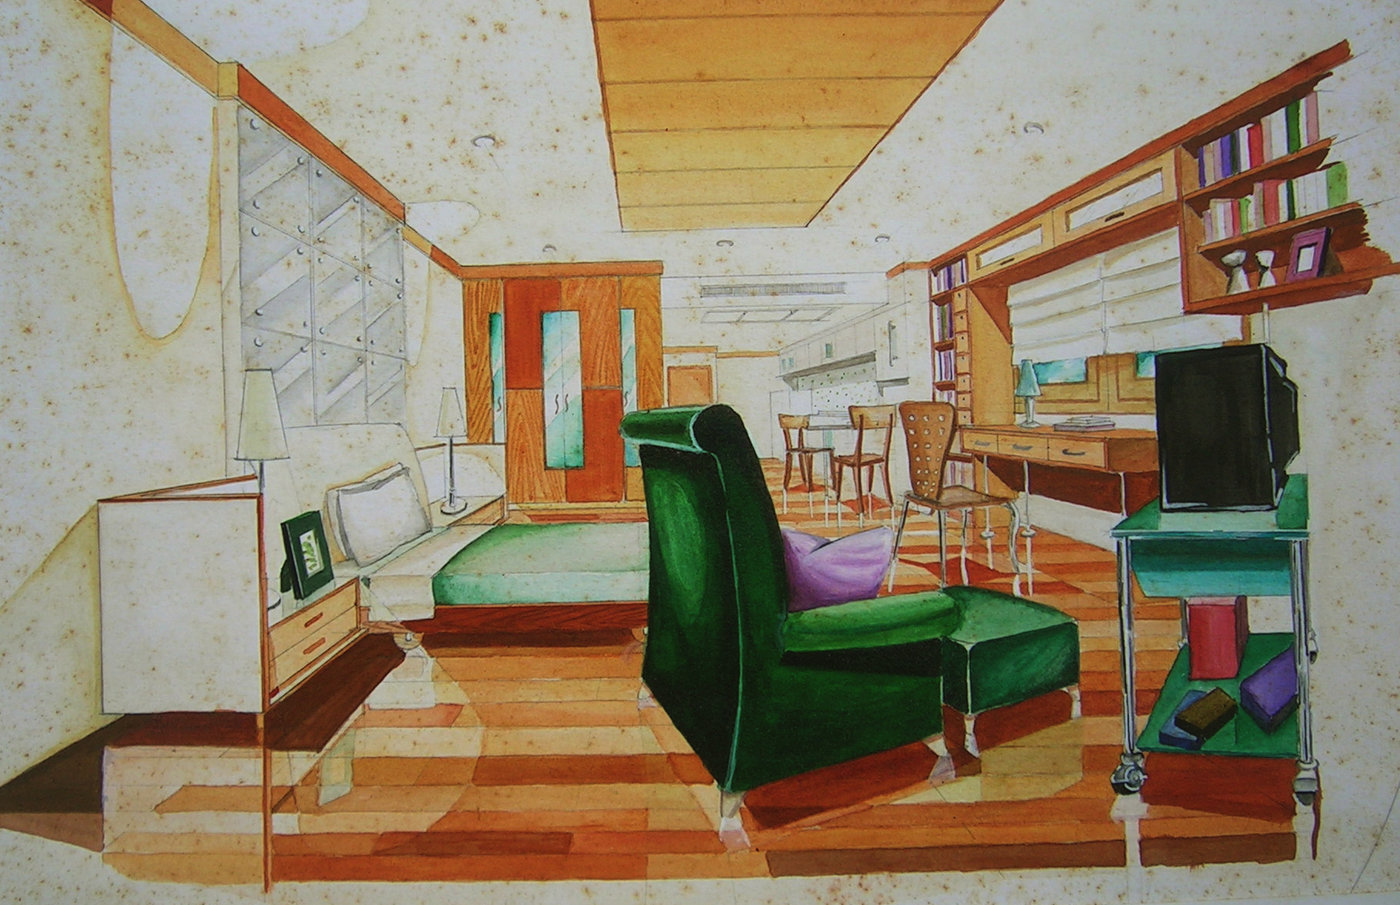 This Is Sketch Perspective Interior Design 12 Year Ago.